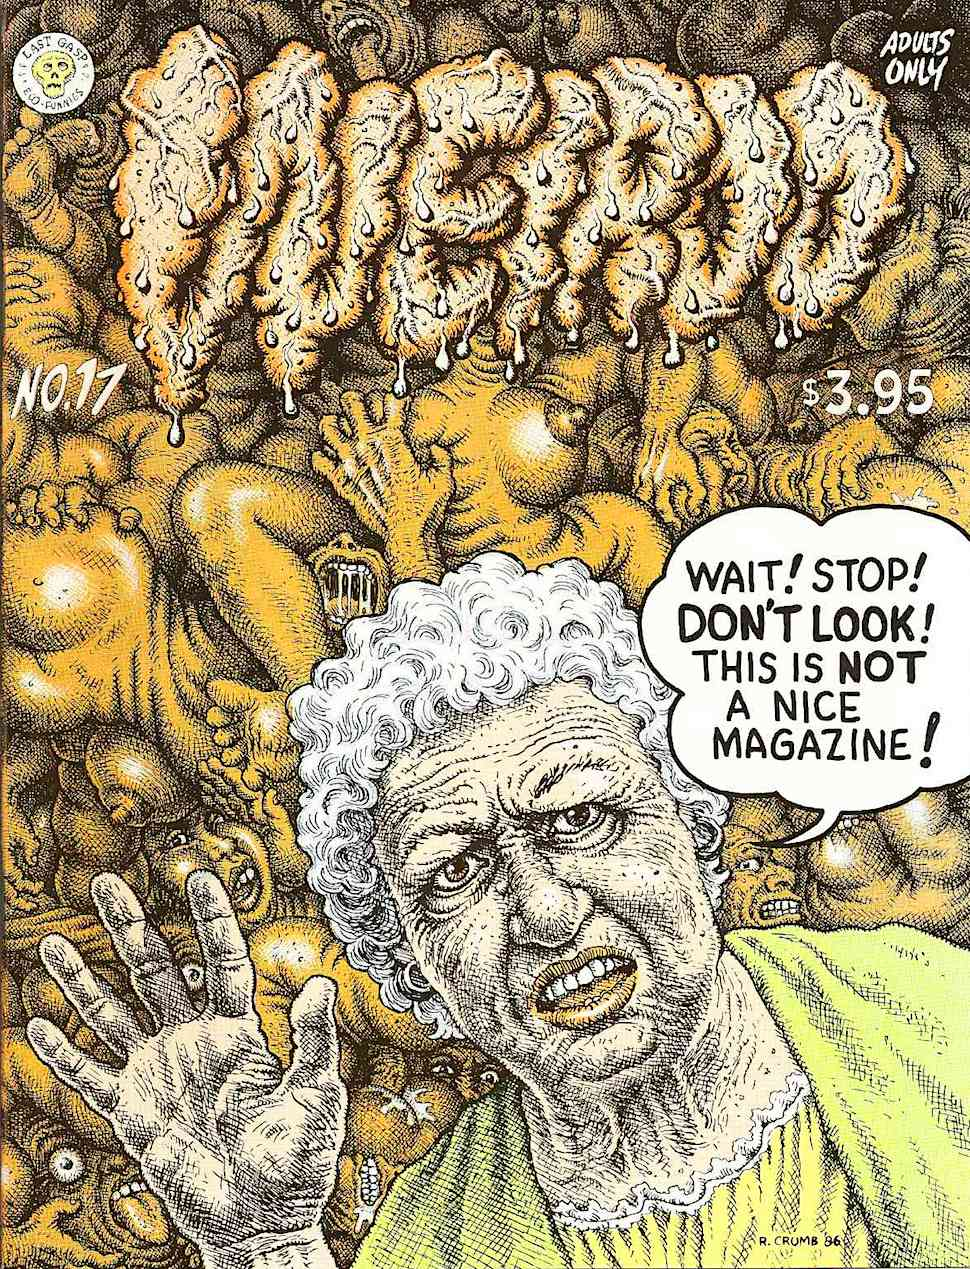 a Robert Crumb Weirdo Magazine #17 cover showing a disapproving senior woman